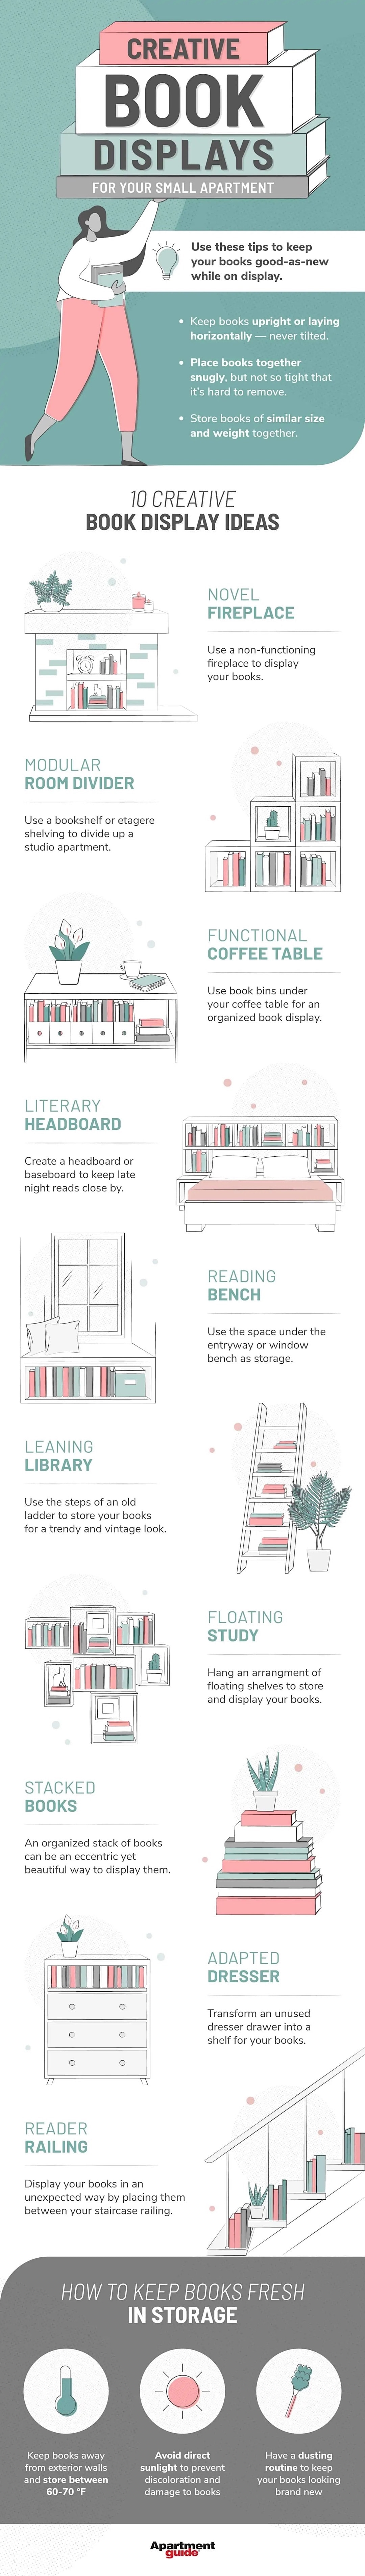 Creative ideas to store your books - full infographic